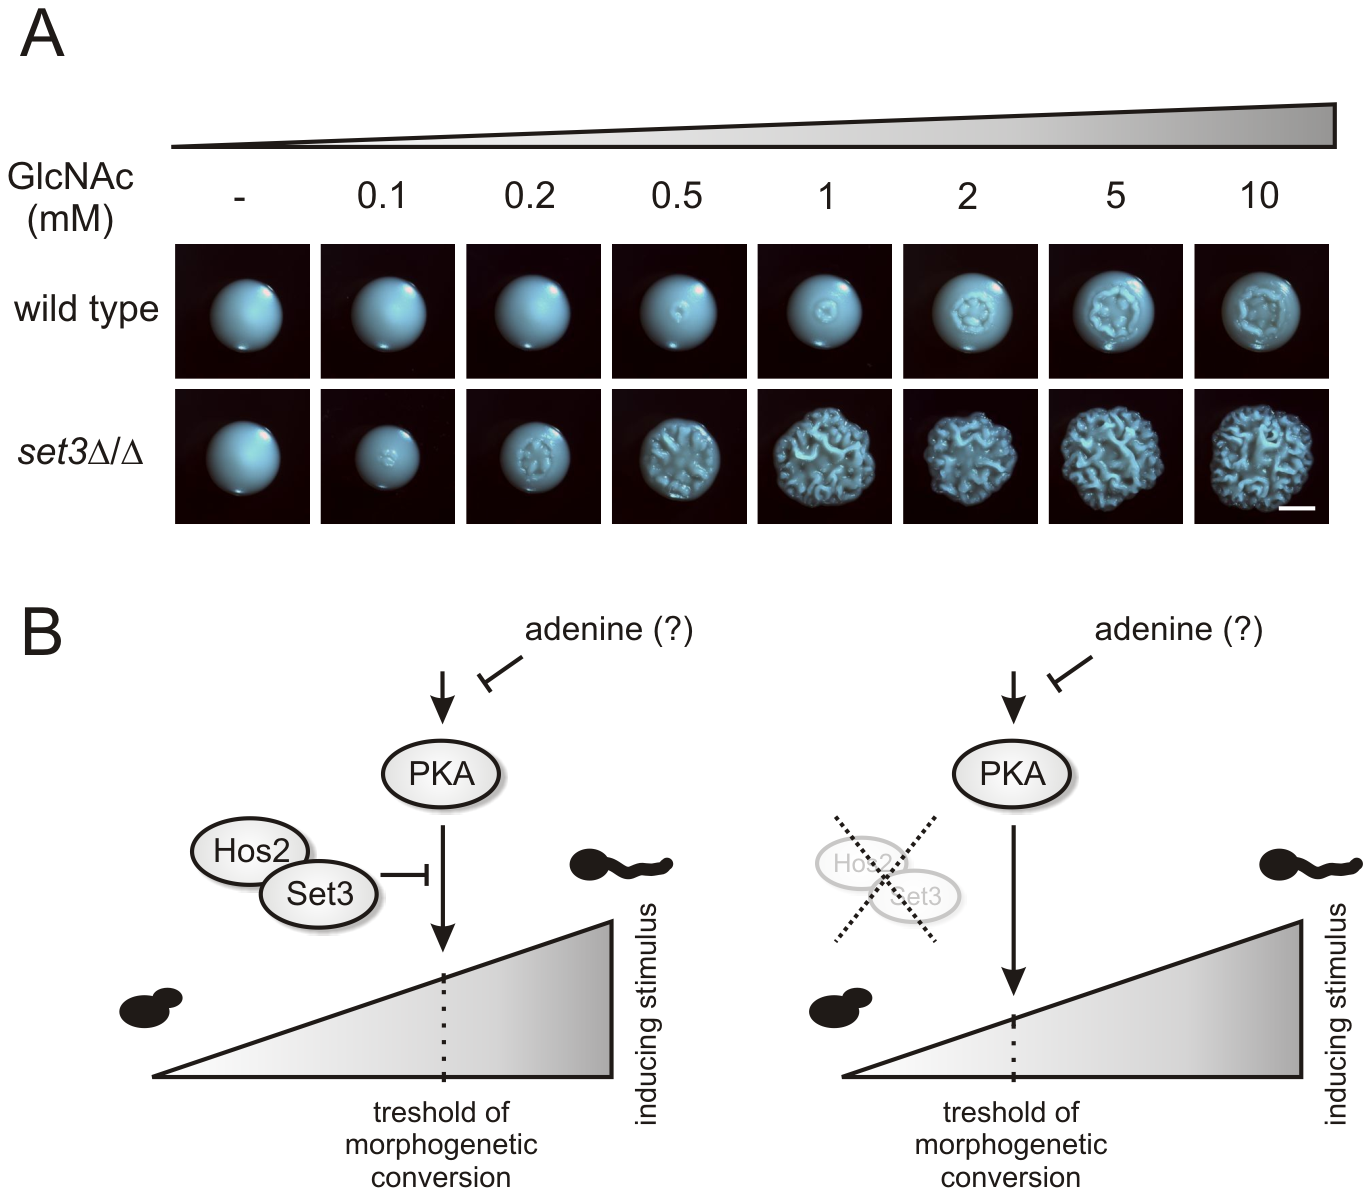 <i>set3</i>Δ/Δ cells are a hyperreactive to cAMP/PKA induction by GlcNAc.